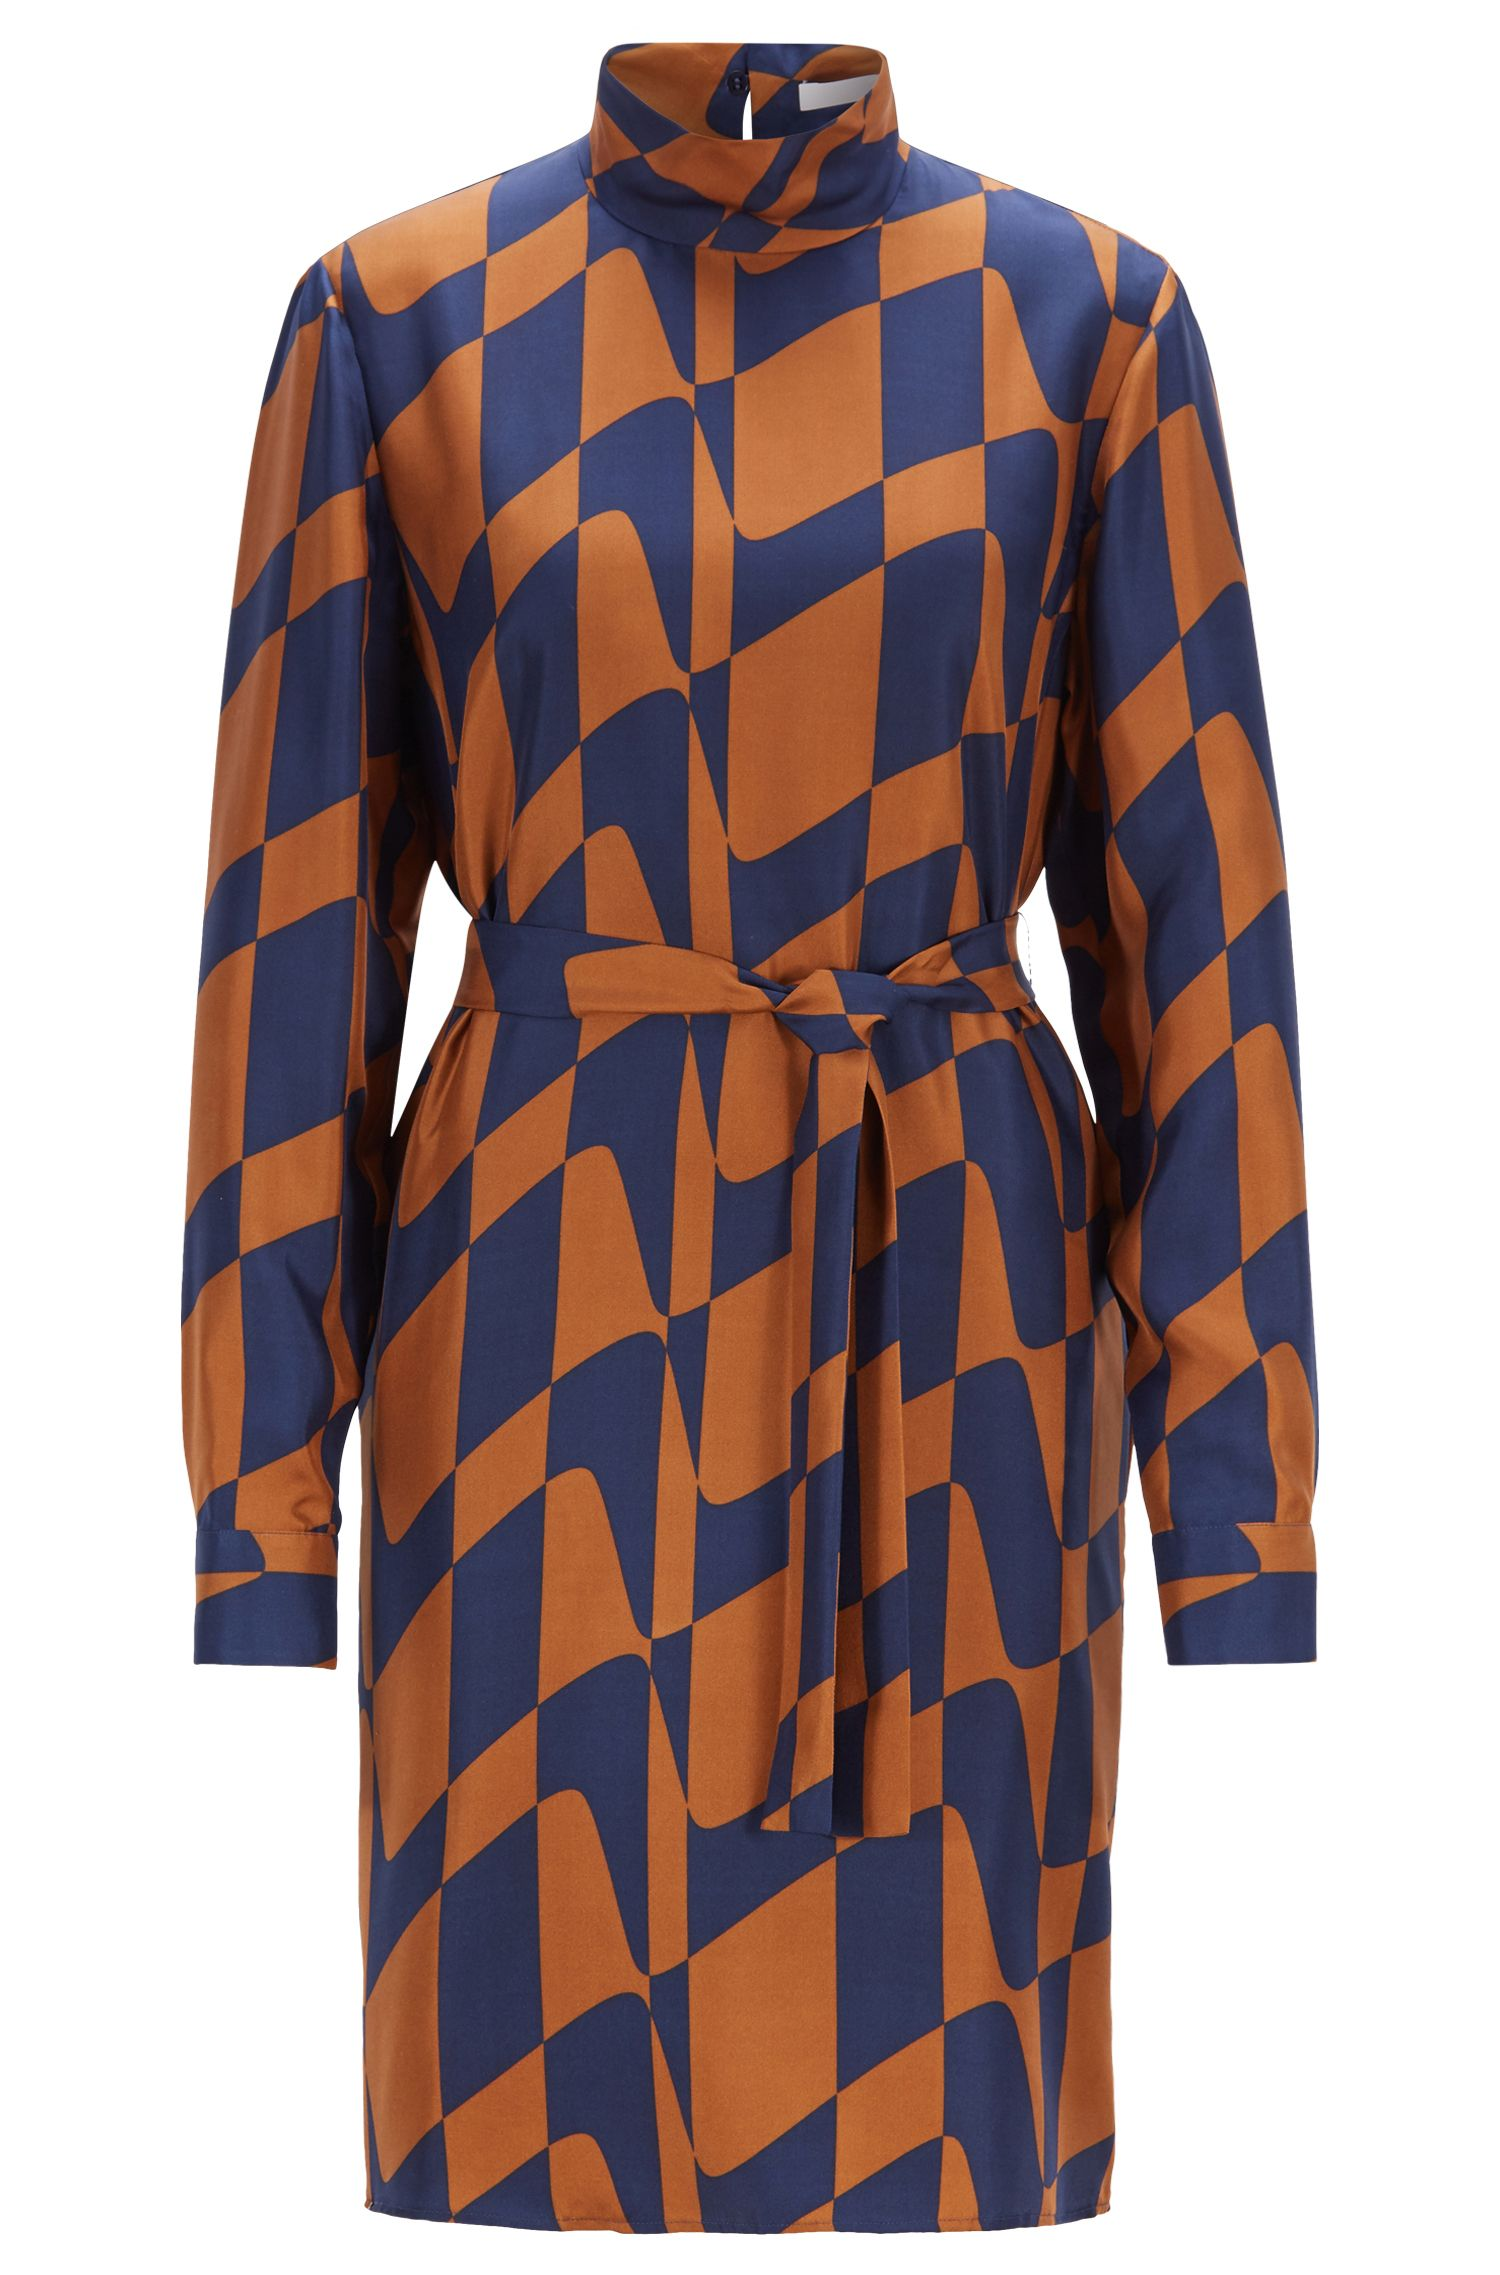 Long-sleeved dress in silk twill with graphic print, Patterned